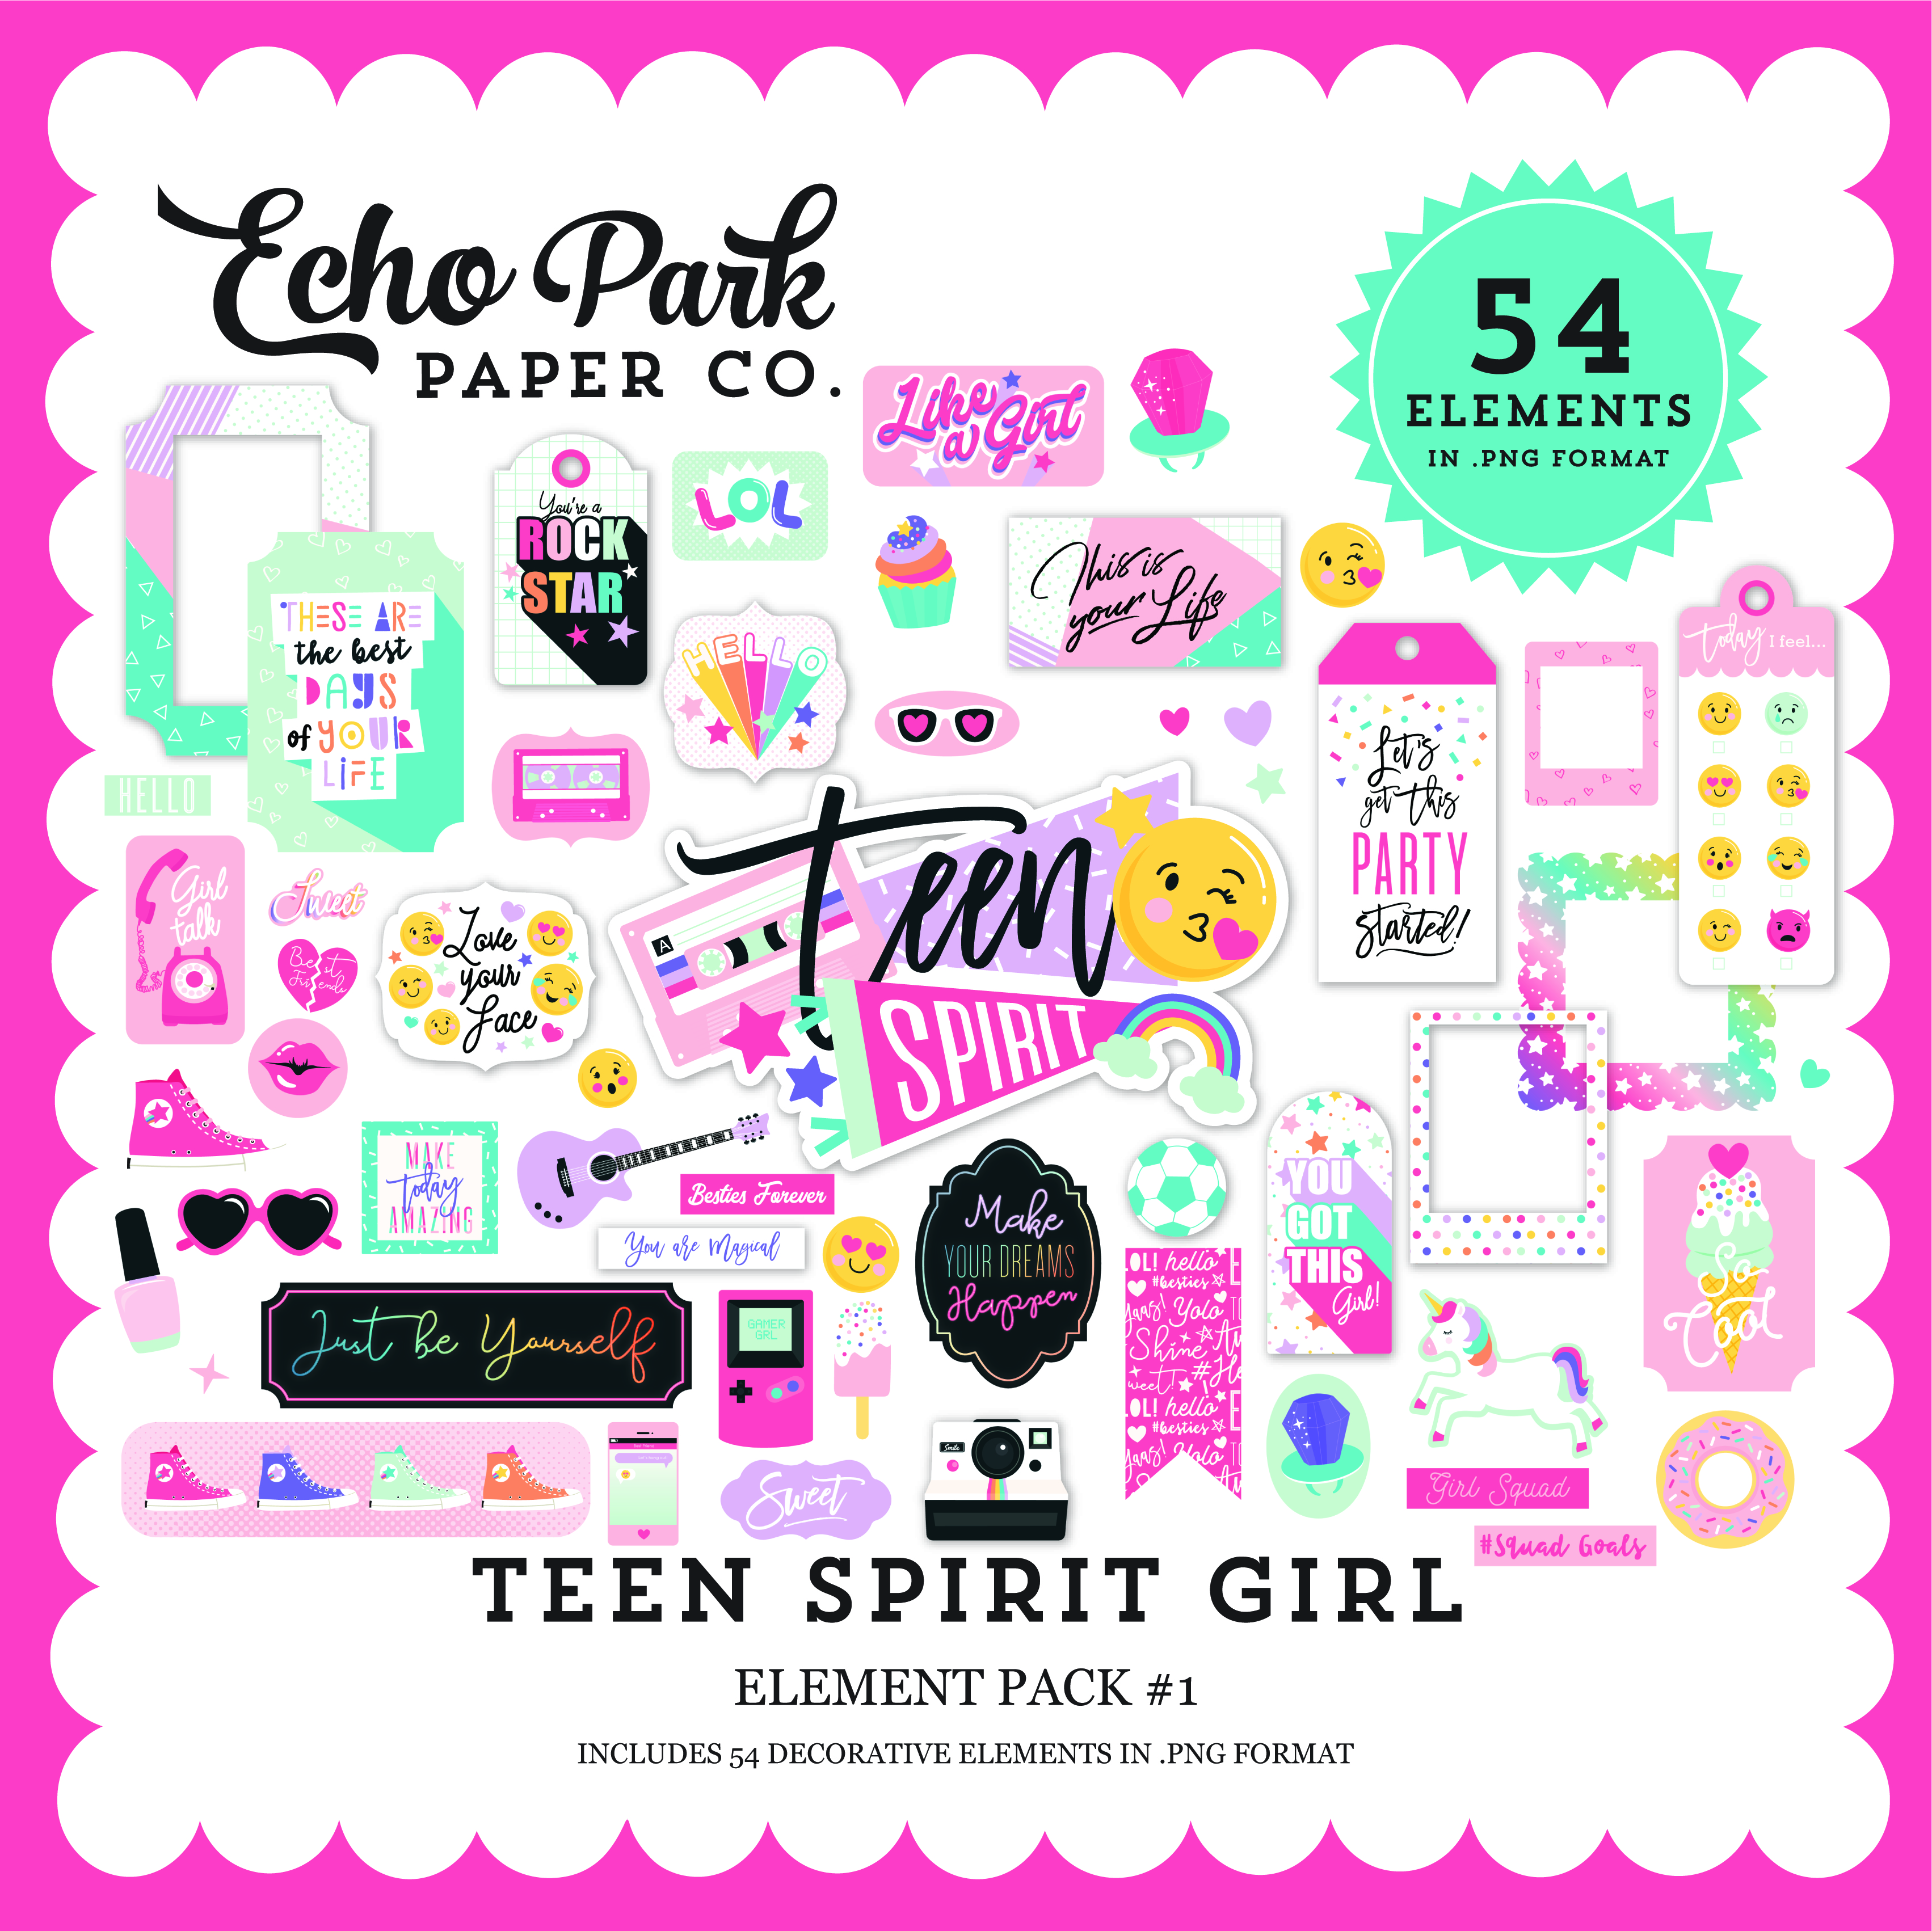 Teen Spirit Girl Element Pack #1